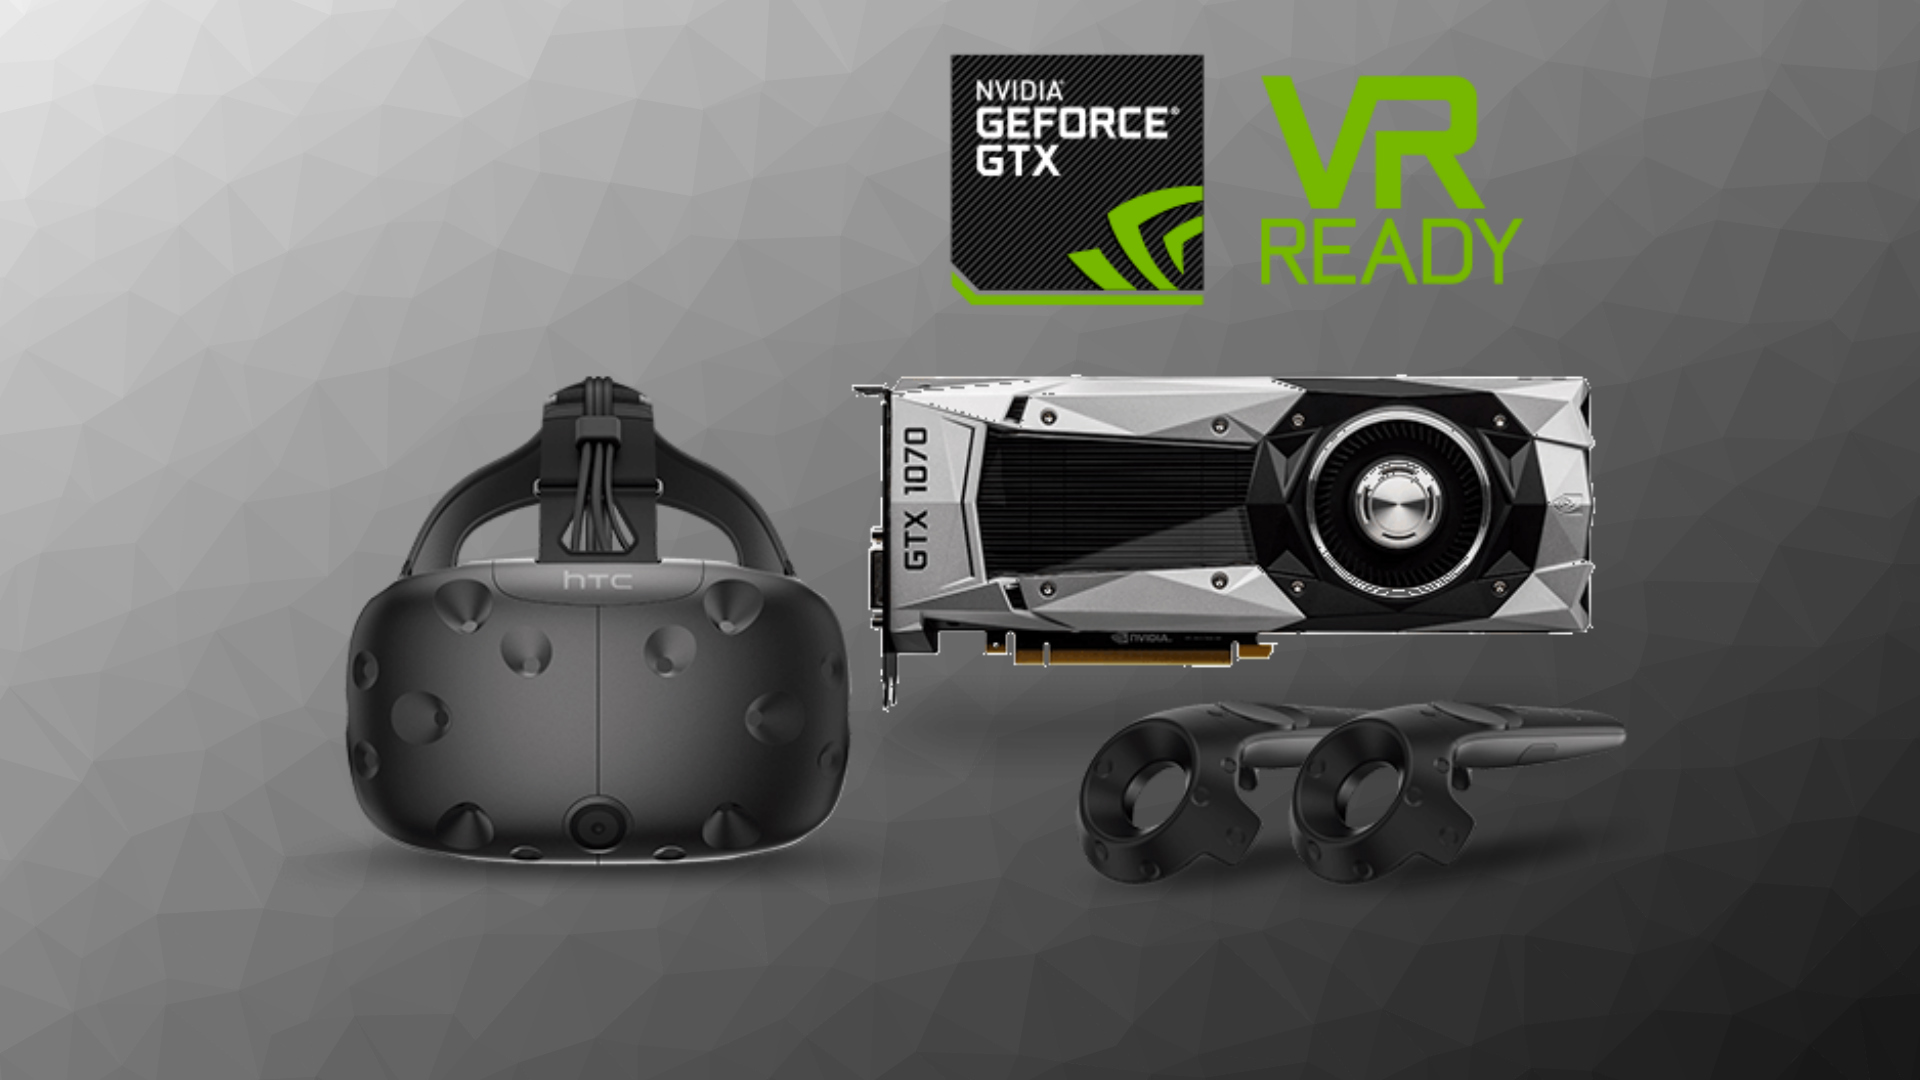 HTC Vive + GTX 1070 Founders Edition Deal is Back for $800